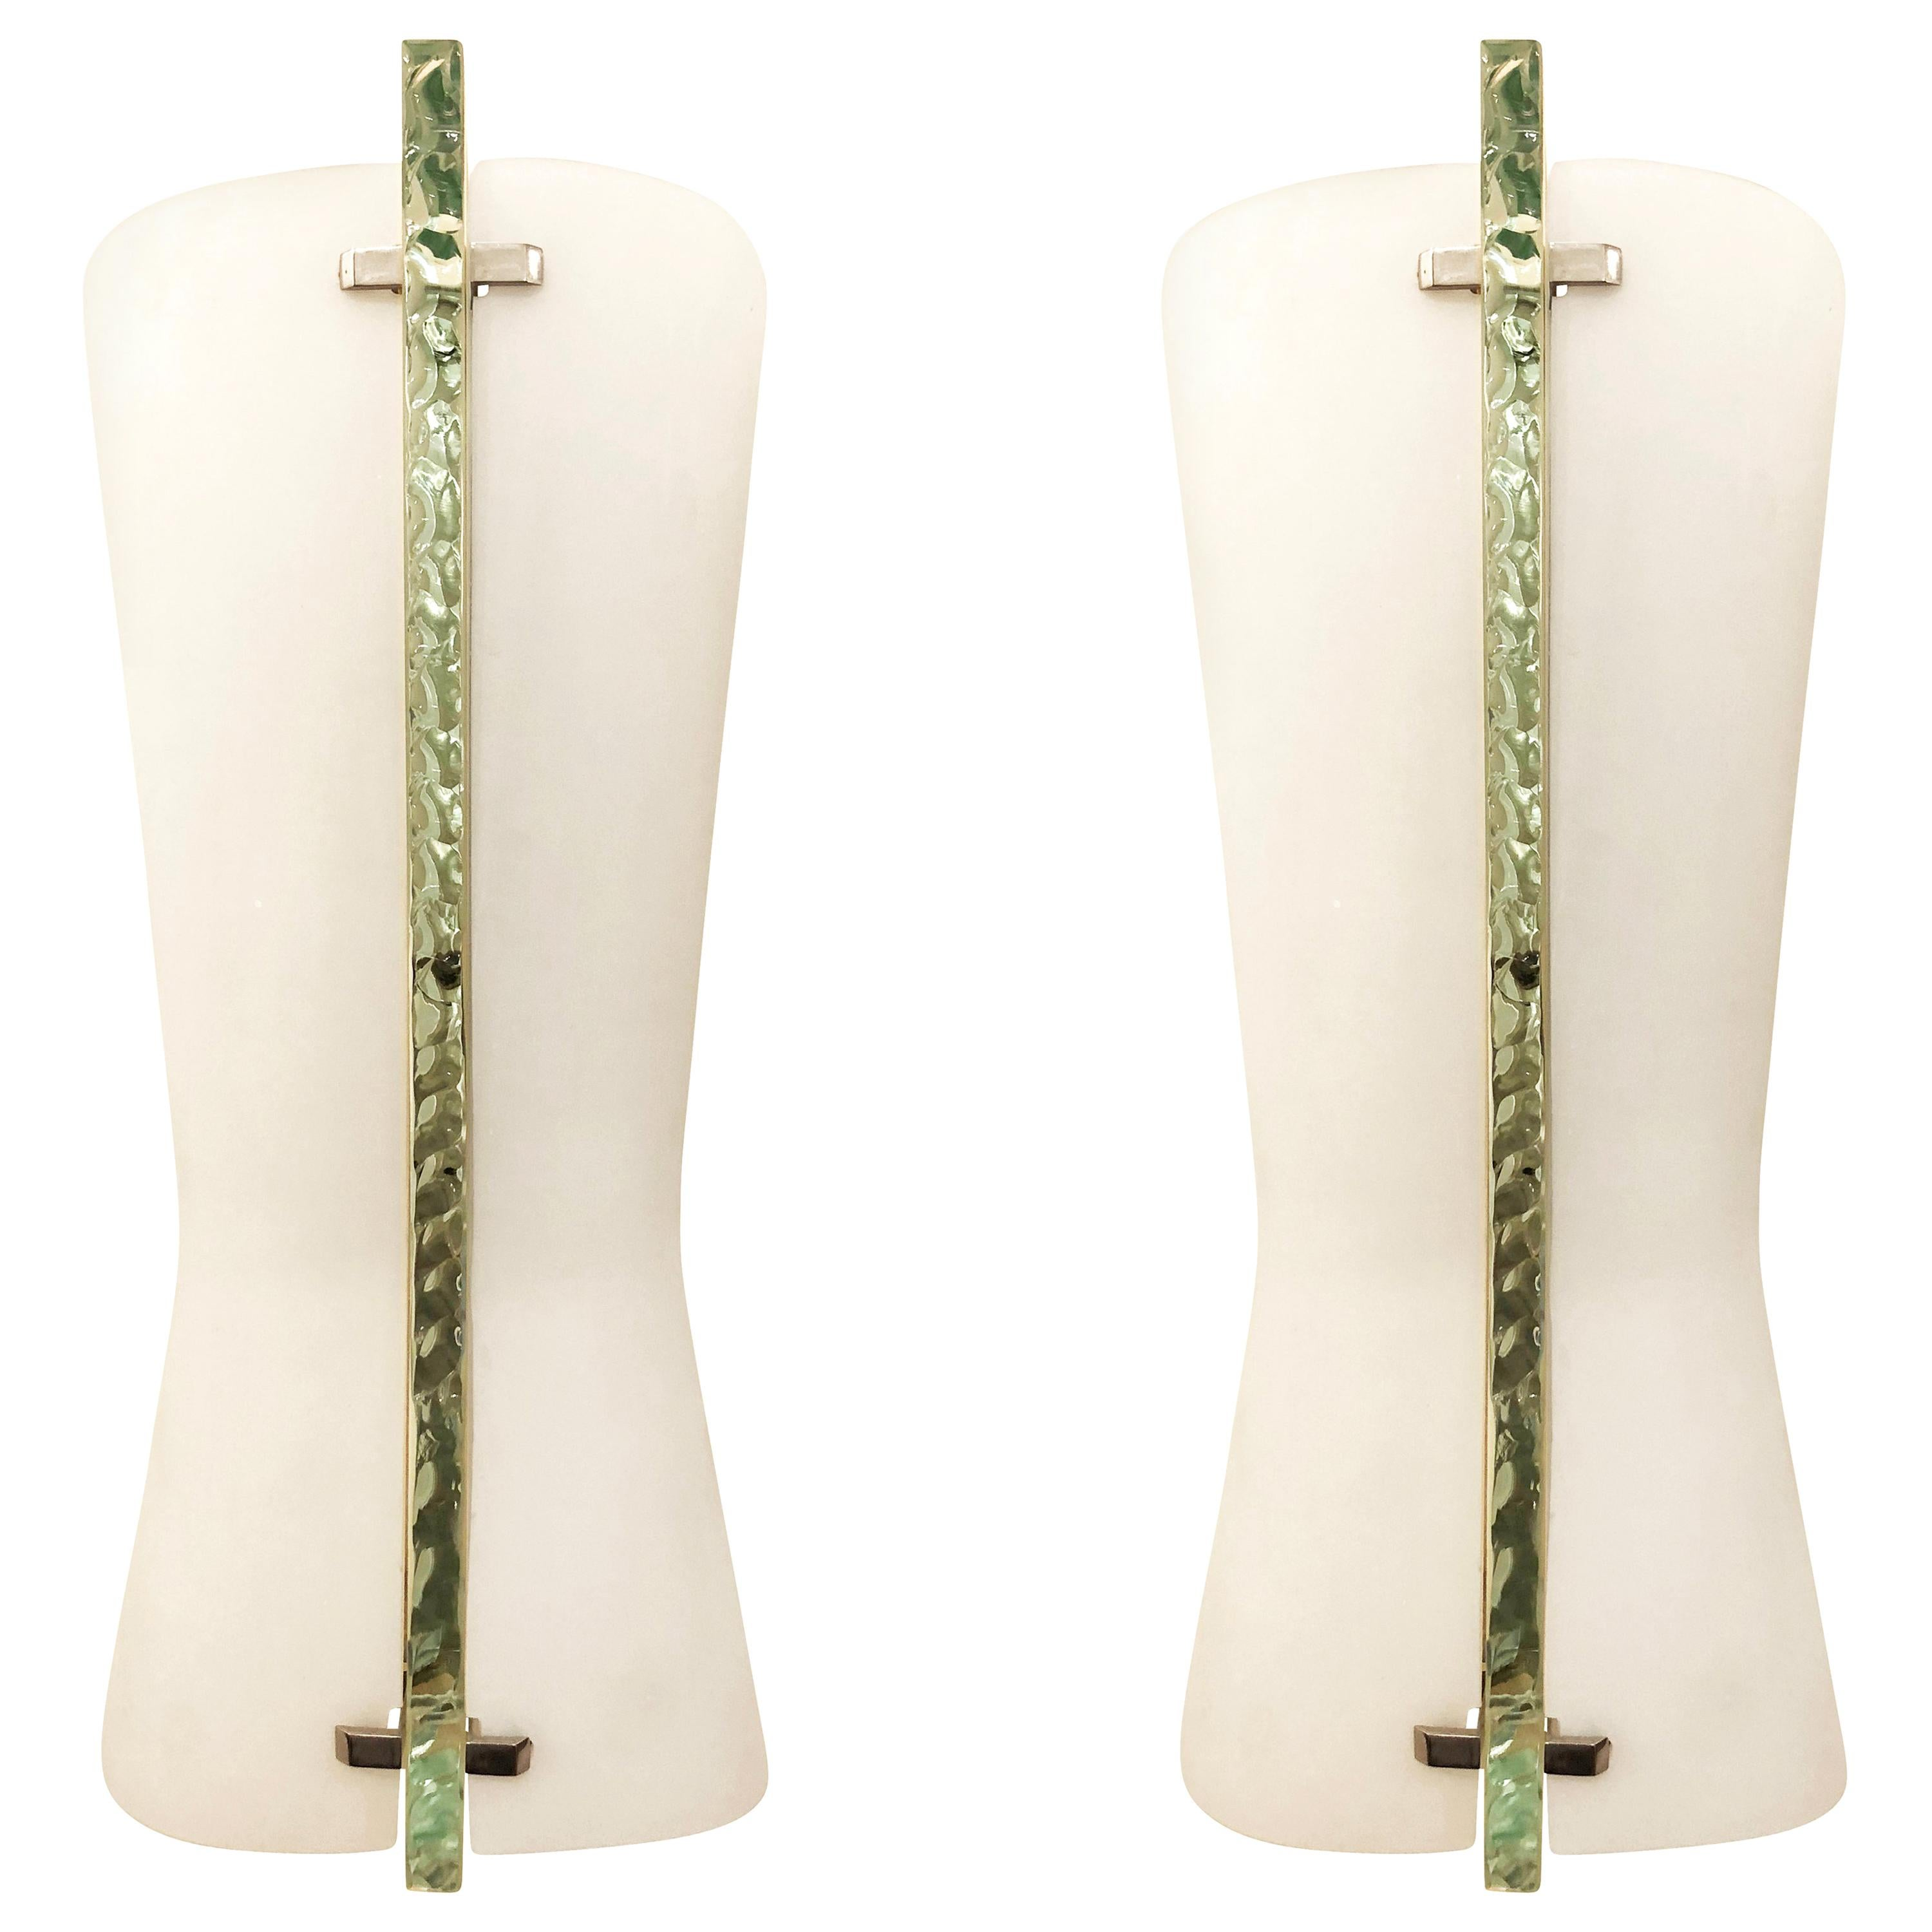 Pair of Large Fontana Arte Sconces by Max Ingrand